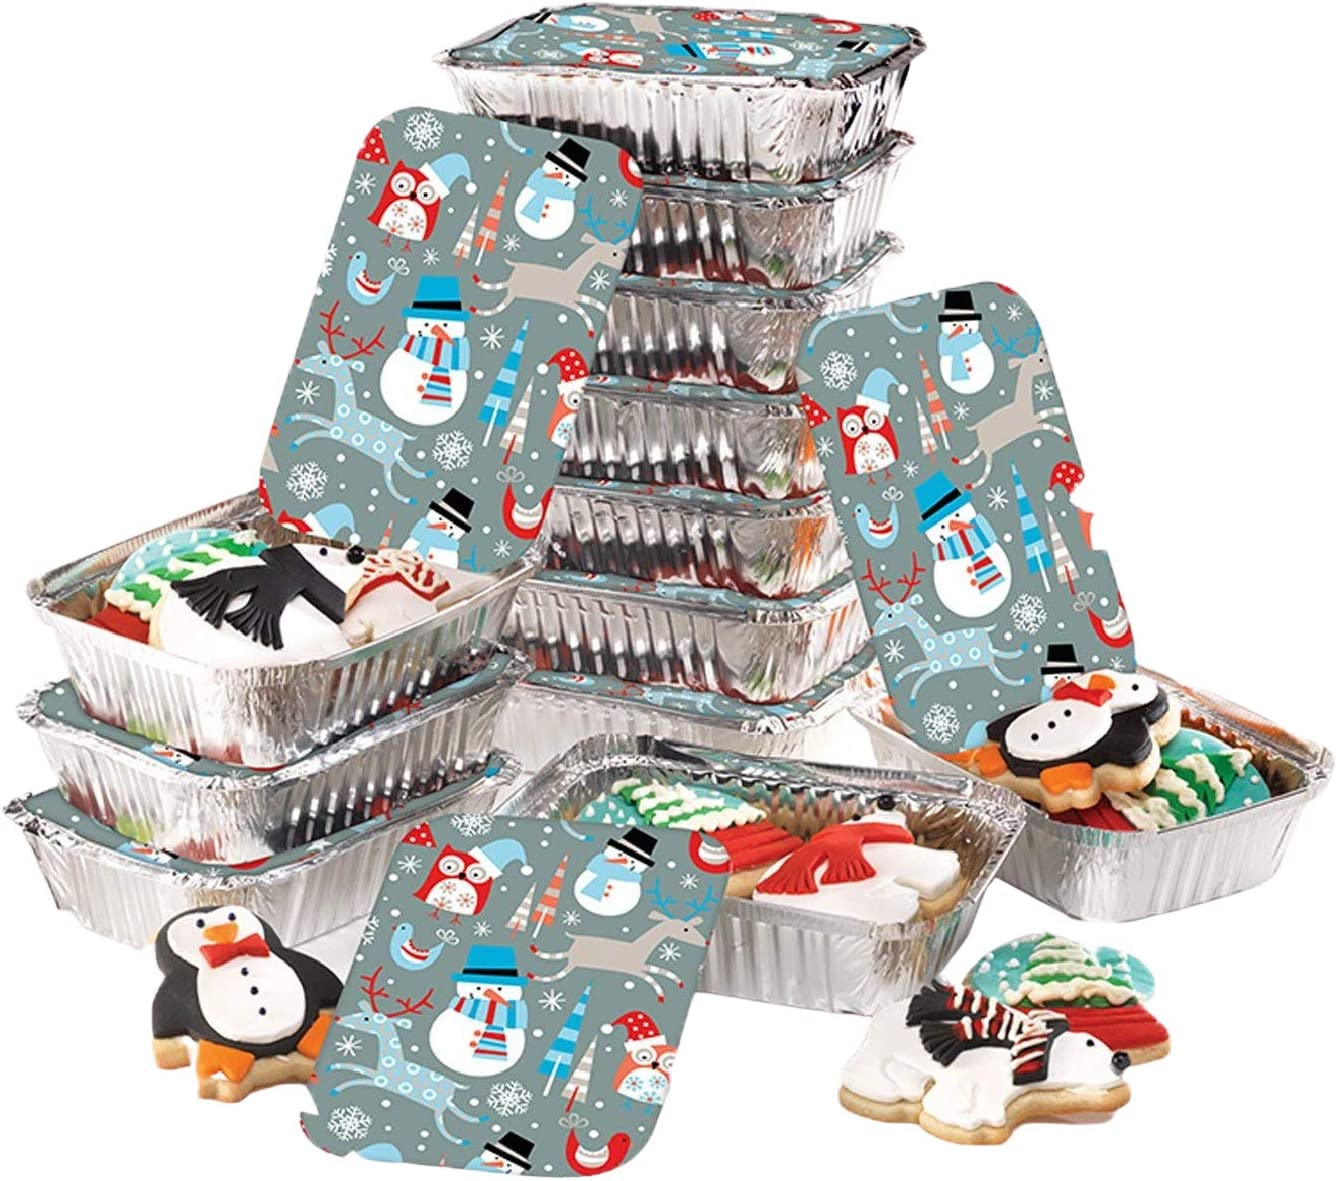 Gia's Kitchen Christmas Cookie Tins, 24 Piece, Set of 12 Foil Pans with Lids, Perfect Cookie Tins with Lids for Gift Giving- Winter Friends Foil Container Rectangular